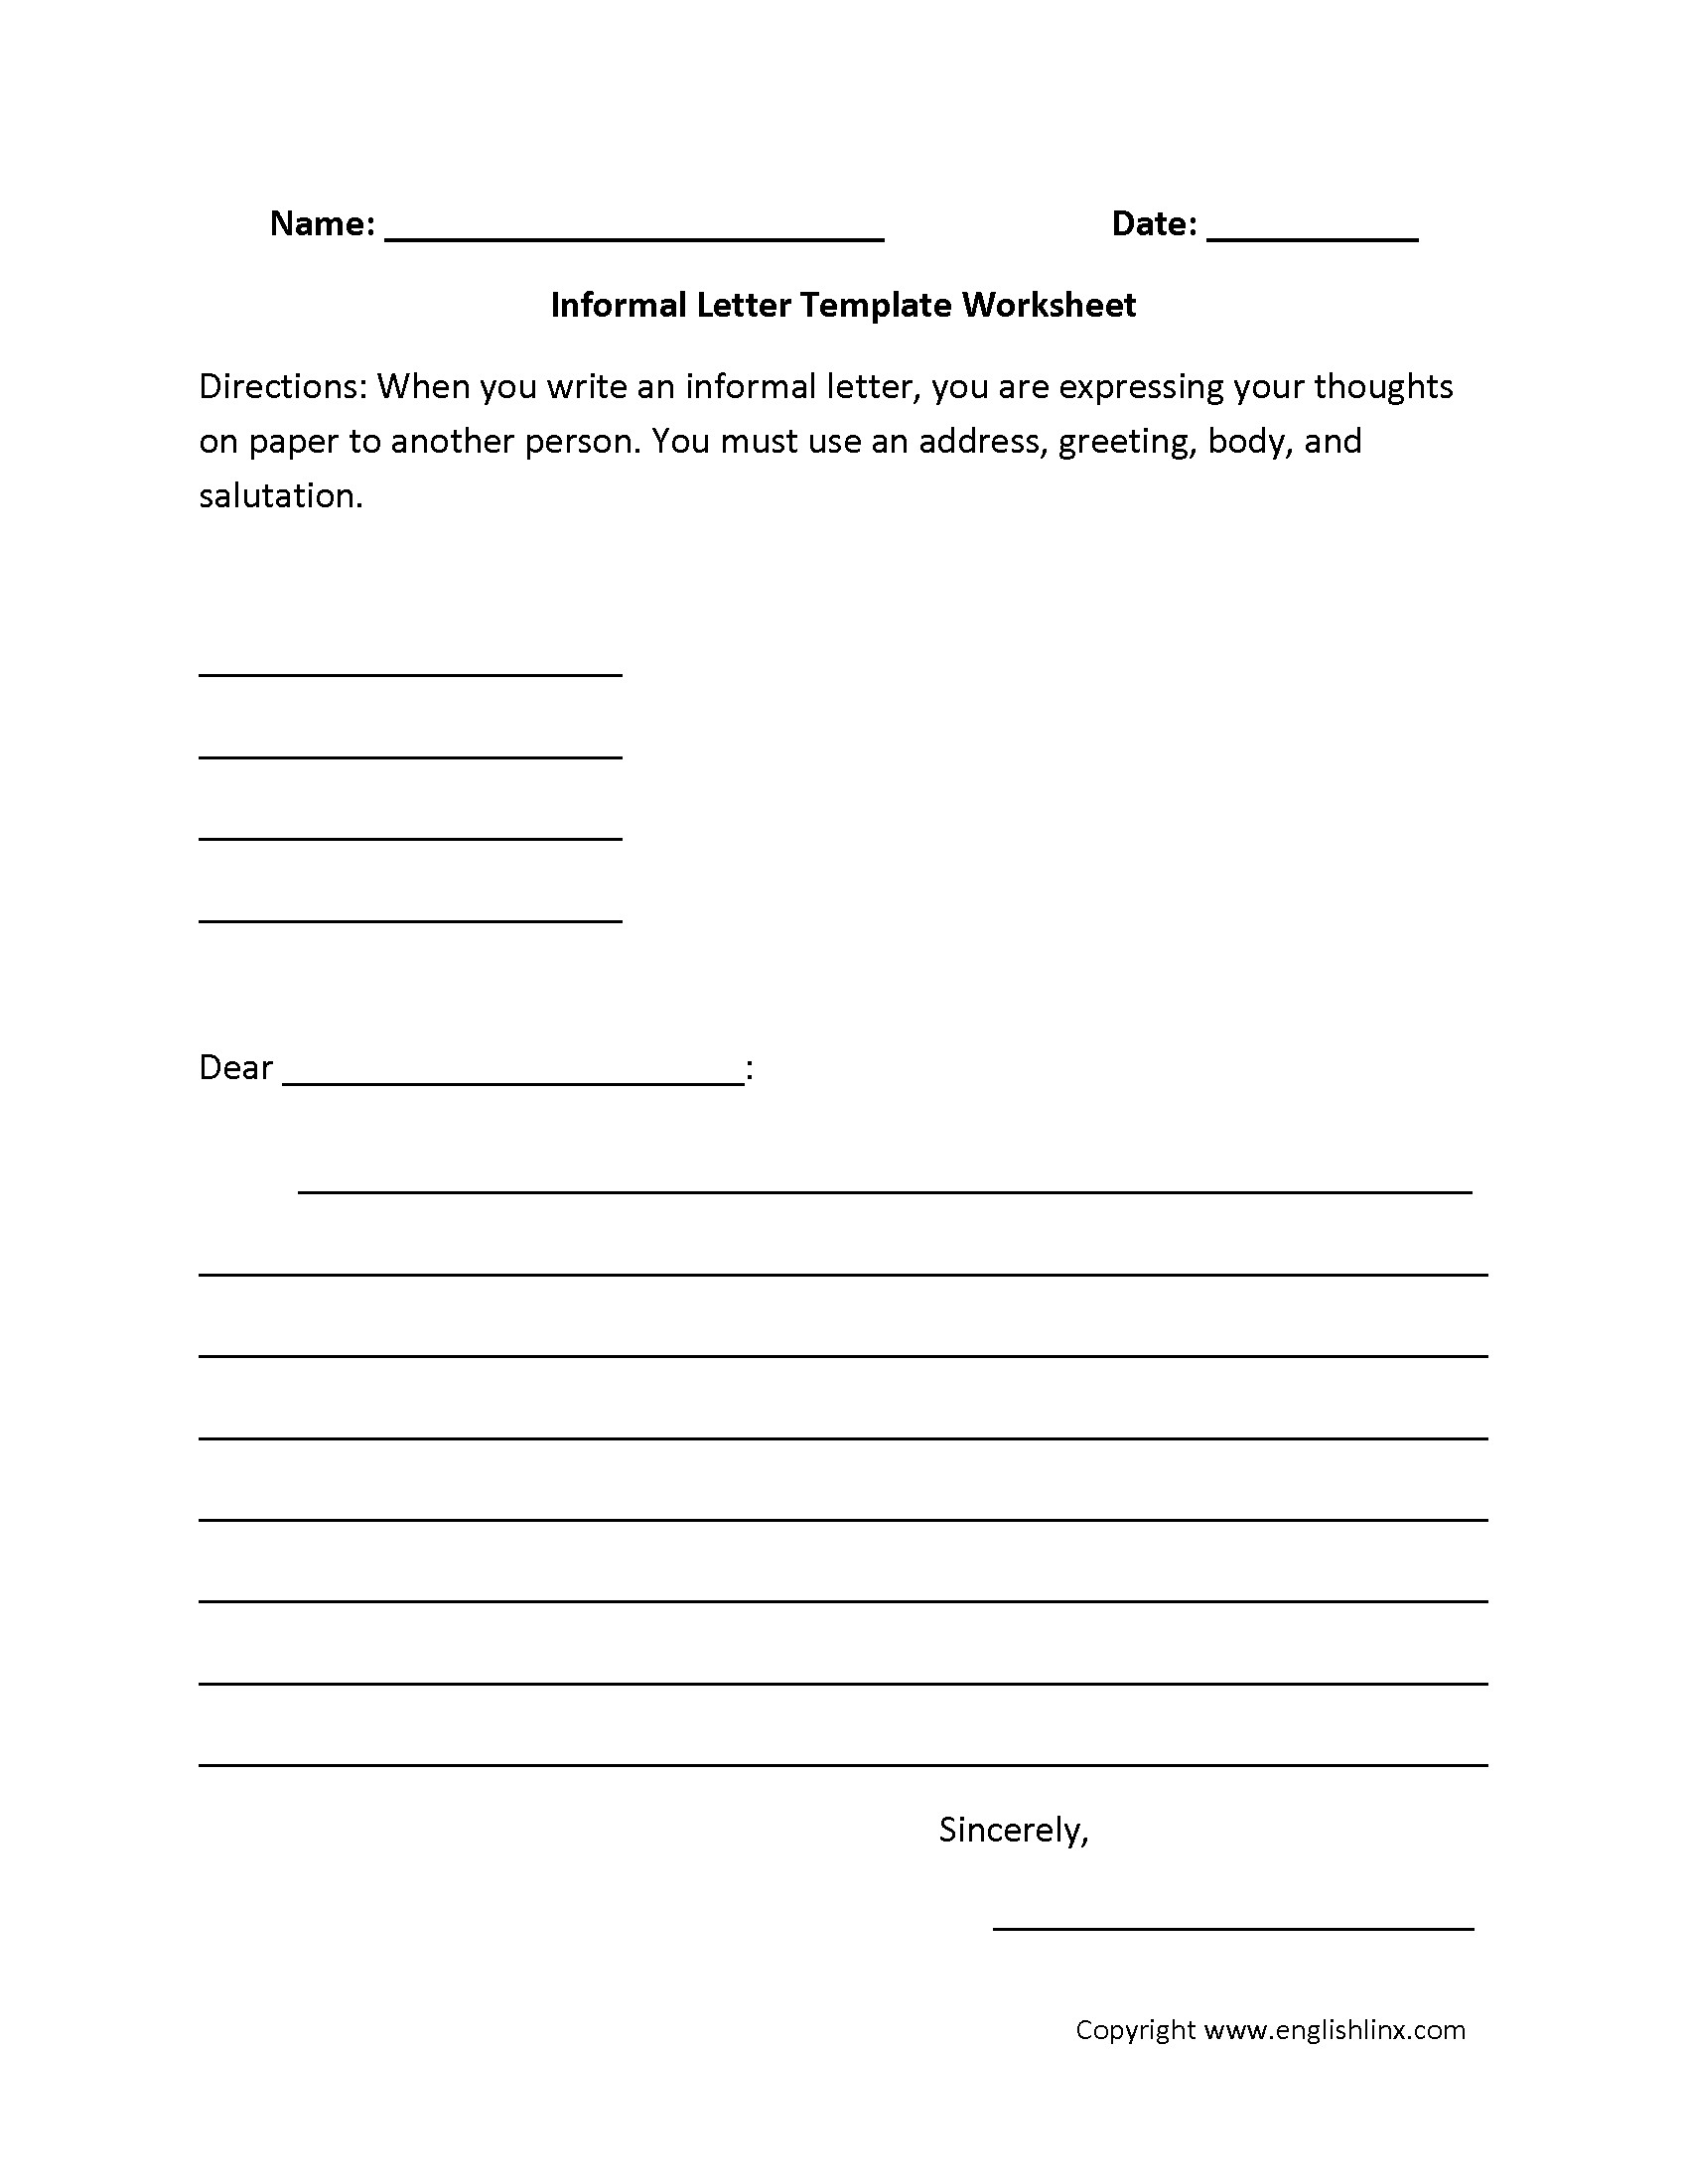 Writing Worksheets for 7th Grade 7th Grade Writing Worksheets